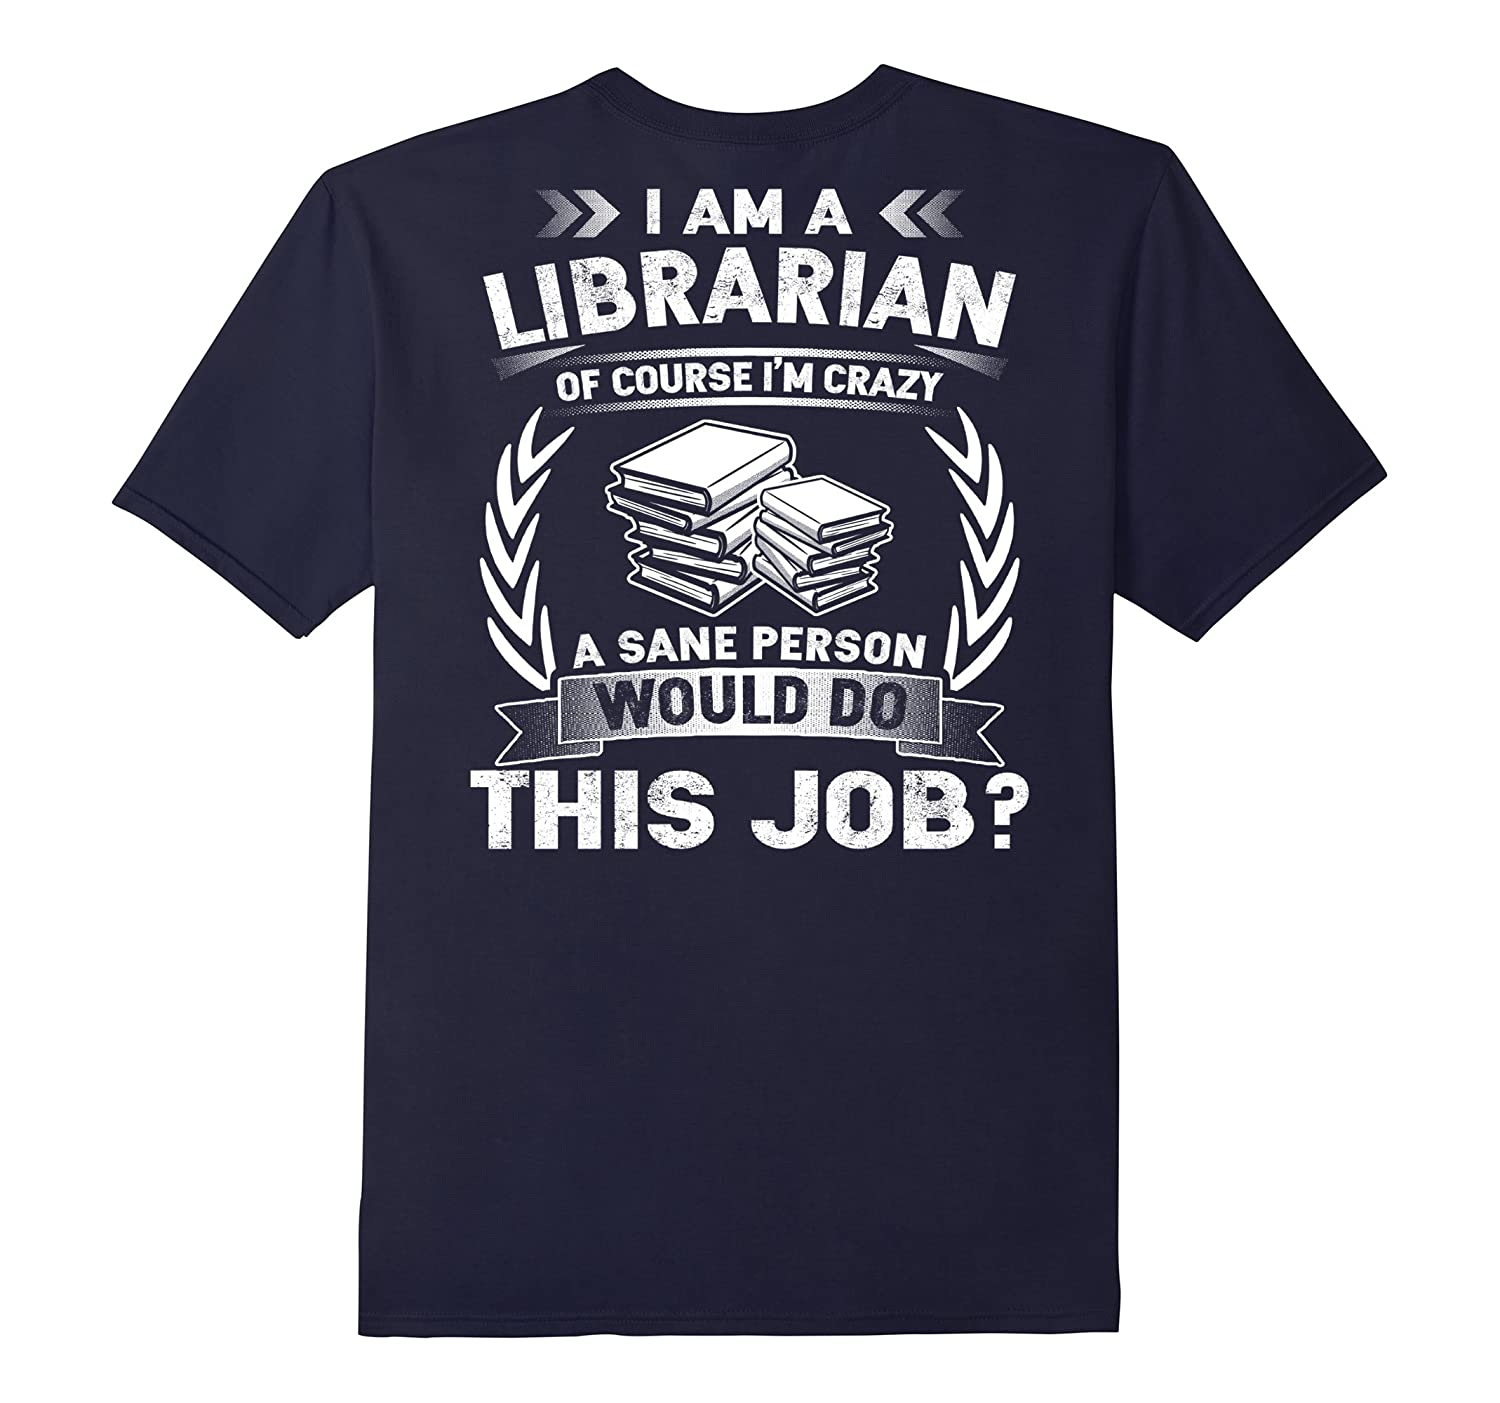 I Am A Librarian T-shirt Im Crazy A Sane Person-TD